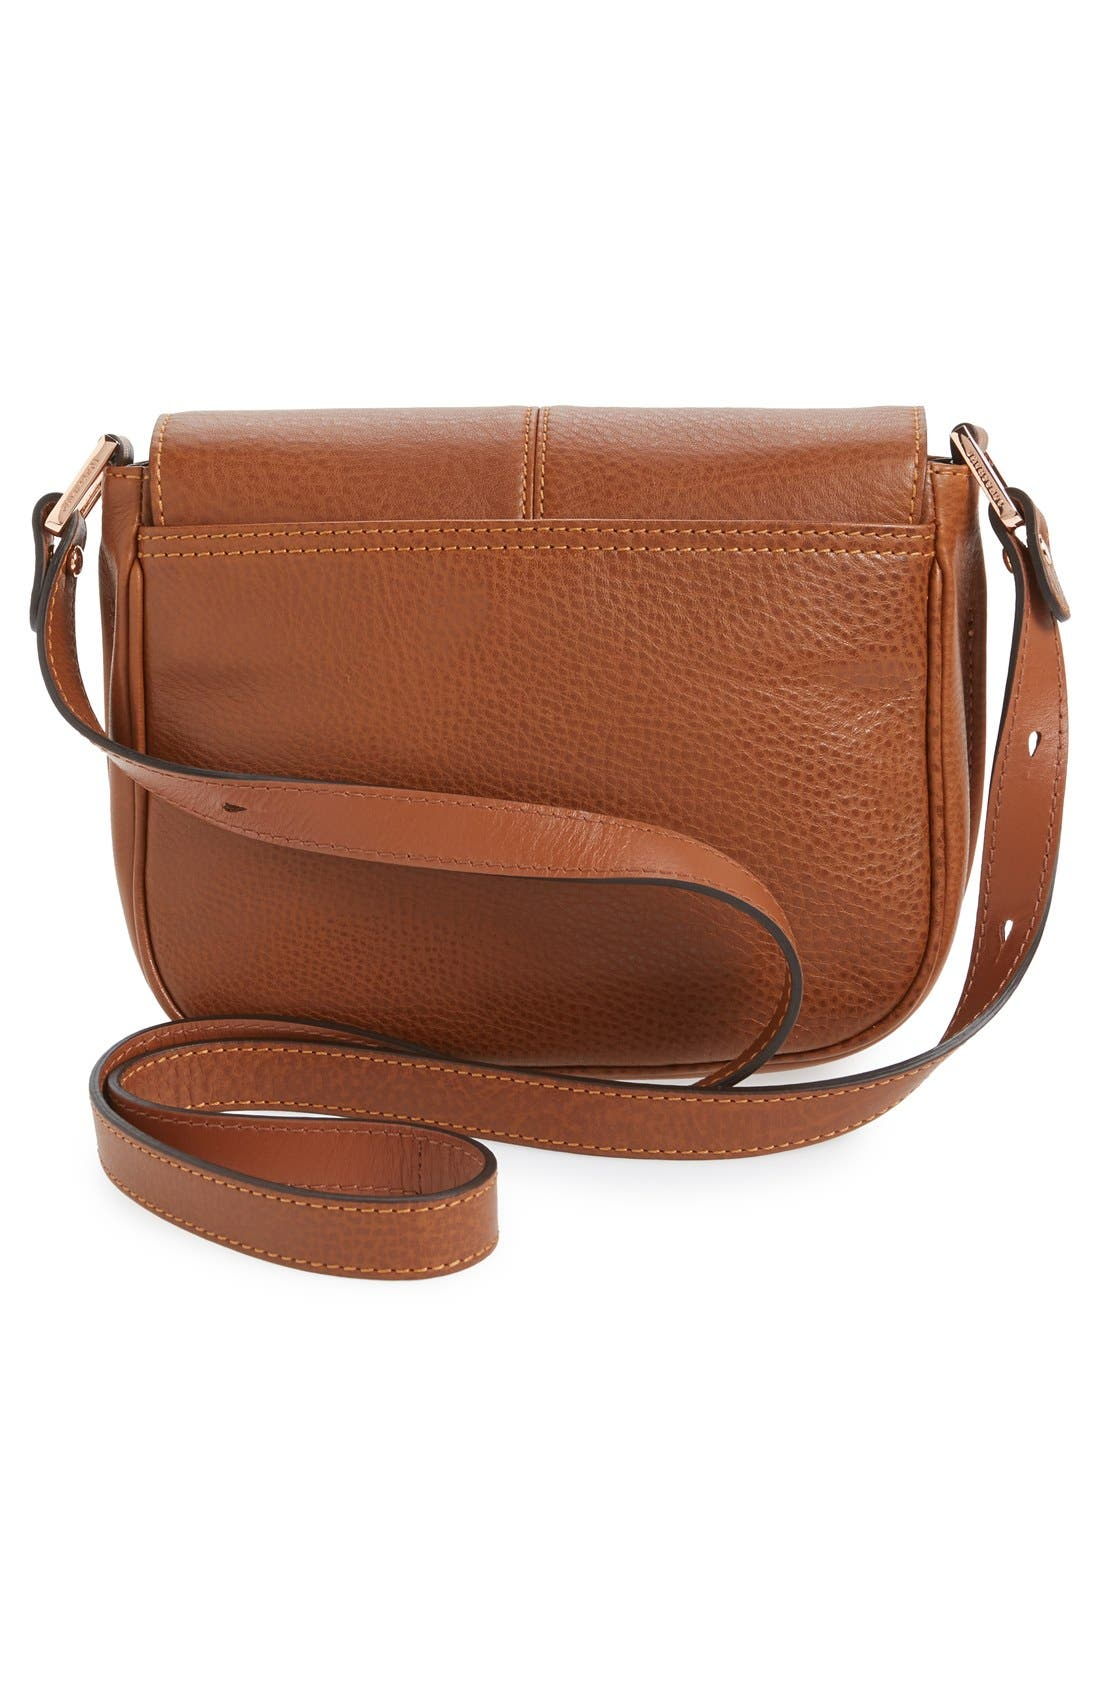 'Small Mystery' Leather Crossbody Bag,                             Alternate thumbnail 4, color,